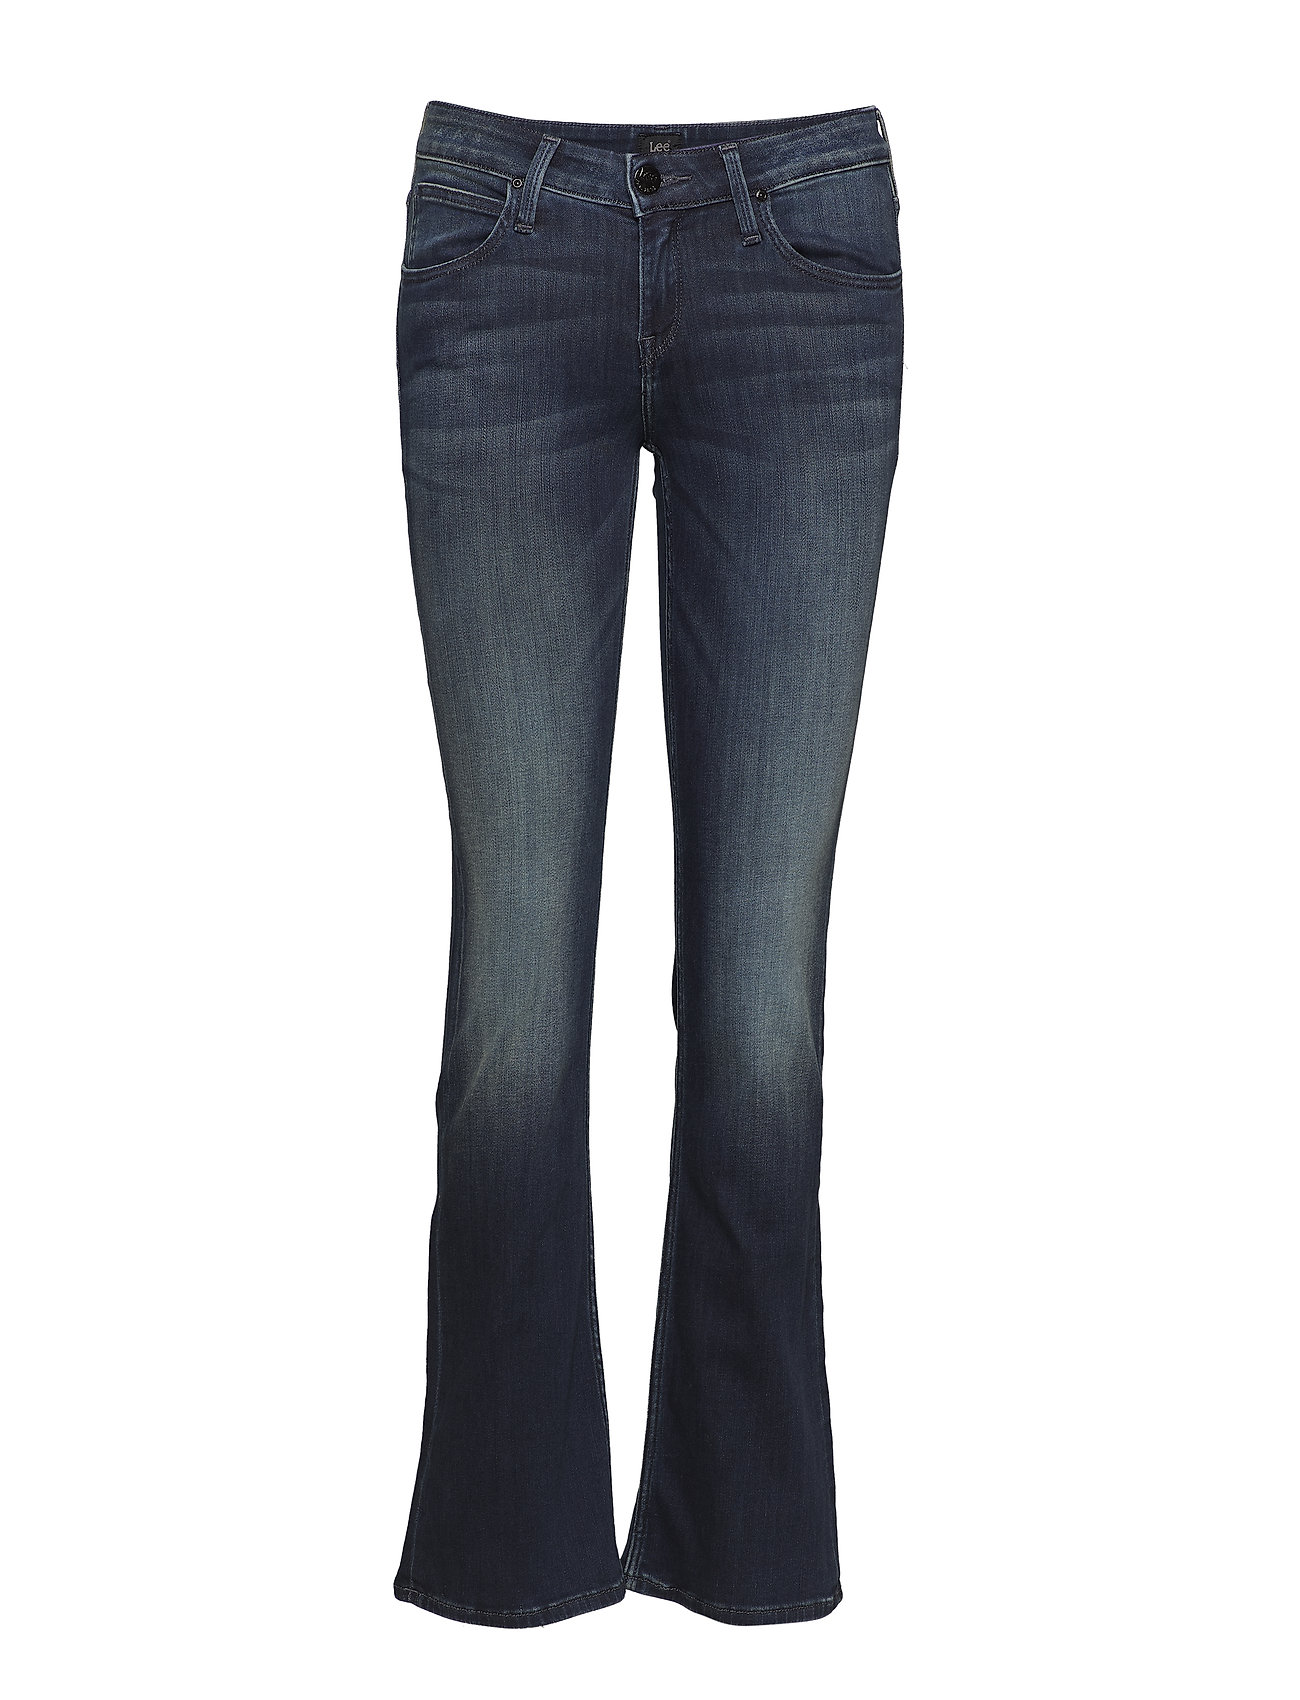 Hoxie - Lee Jeans